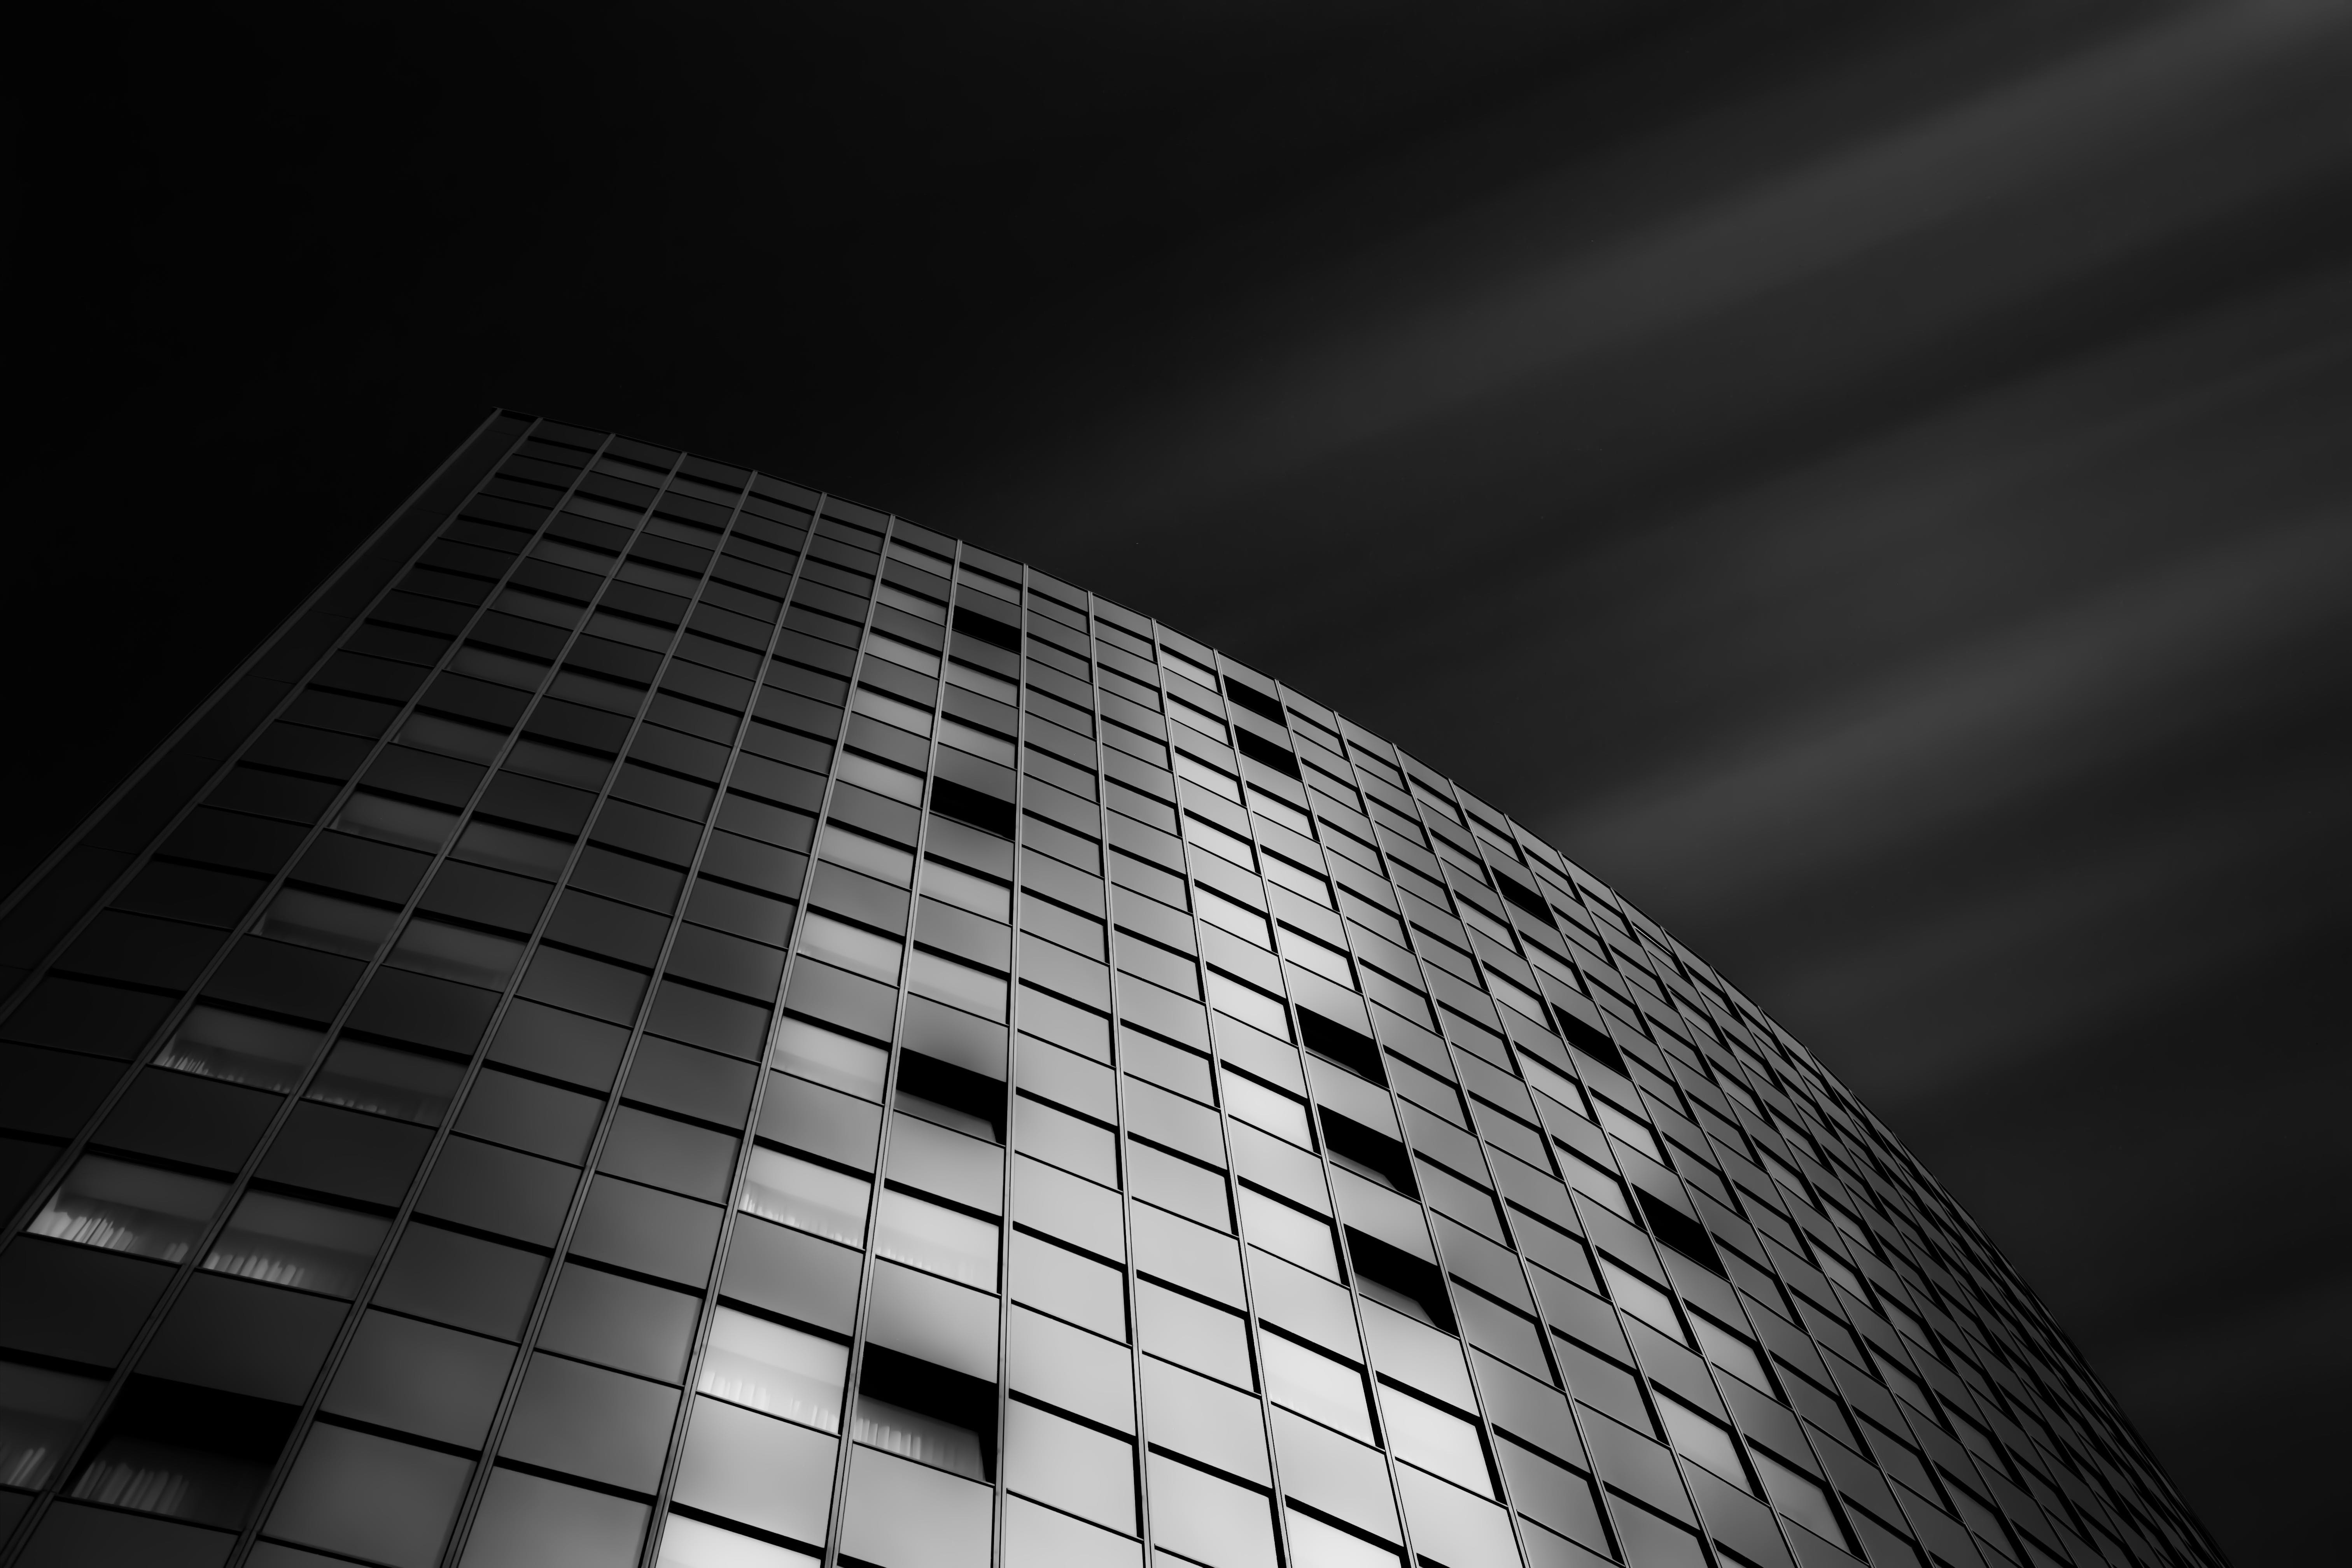 Low-angle Grayscale Photography of Curtain-wall Building